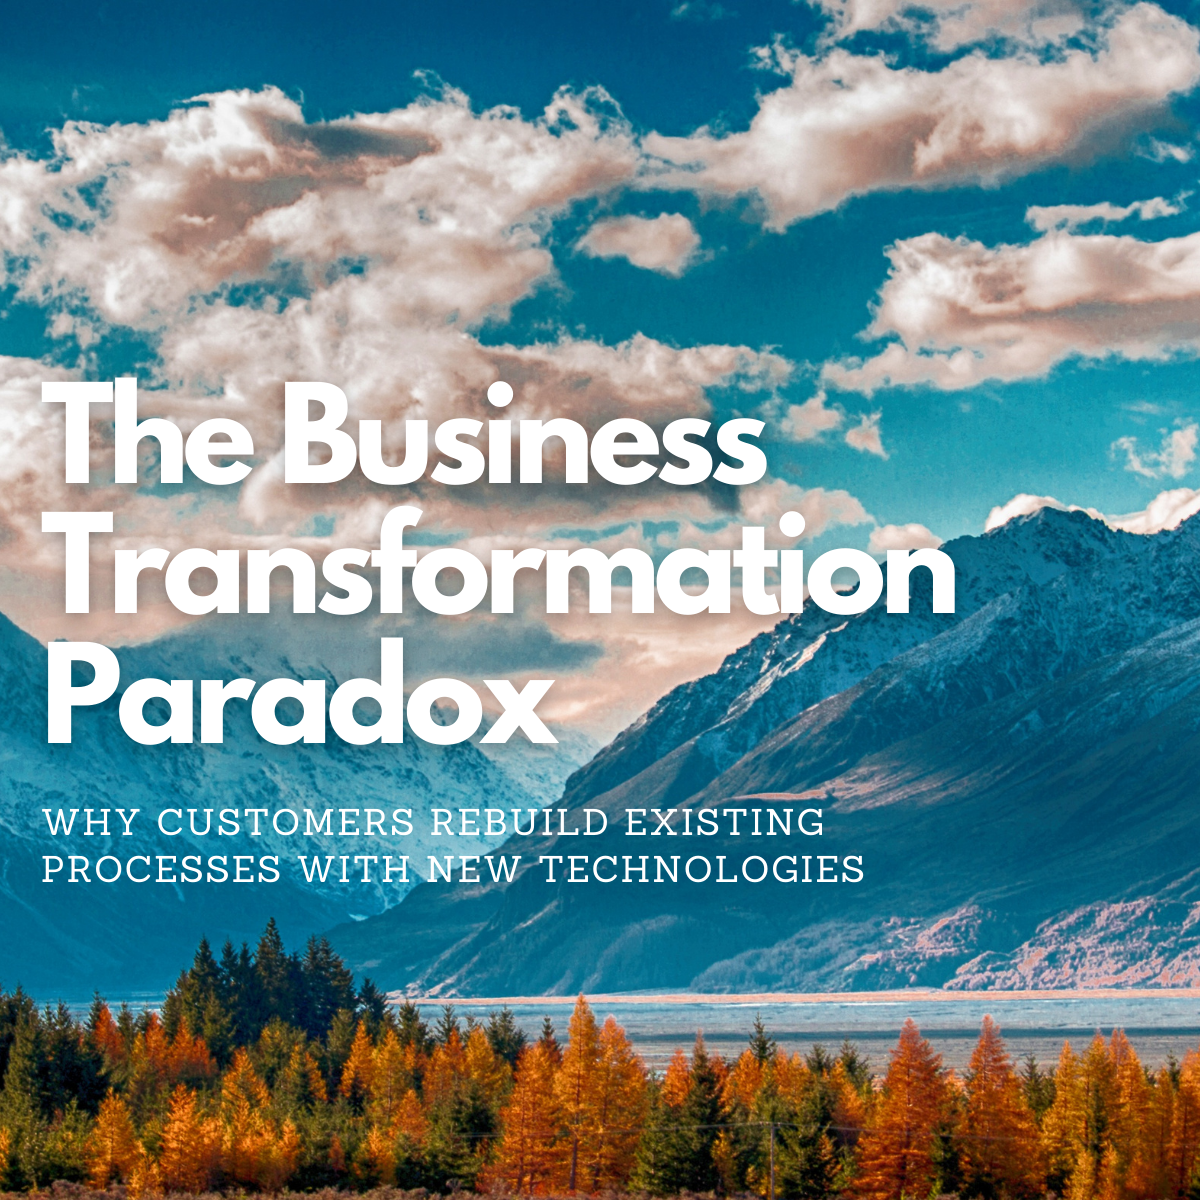 The Business Transformation Paradox